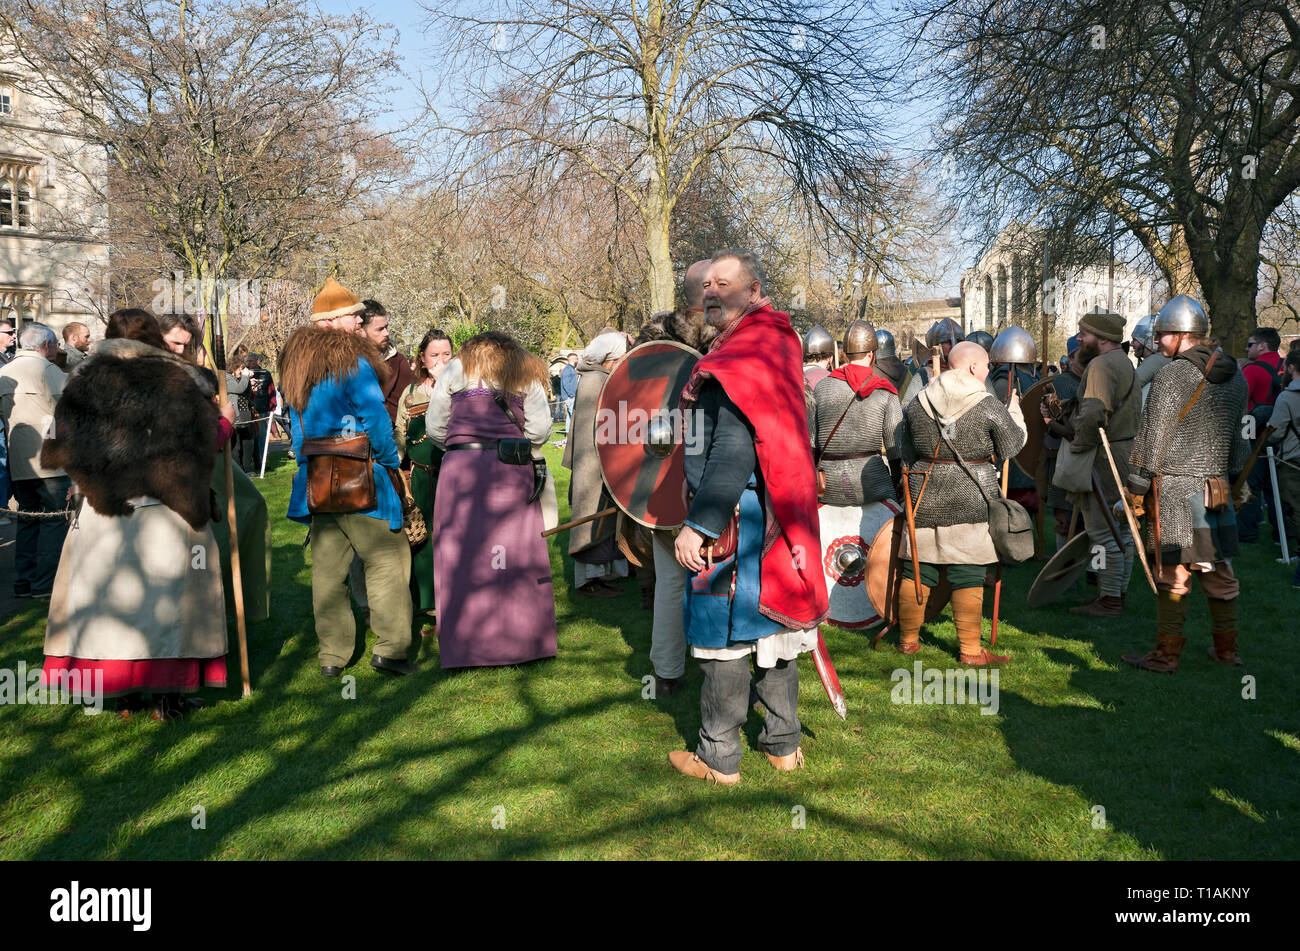 People in costume at the Viking Festival Dean's Park York North Yorkshire England UK United Kingdom GB Great Britain Stock Photo